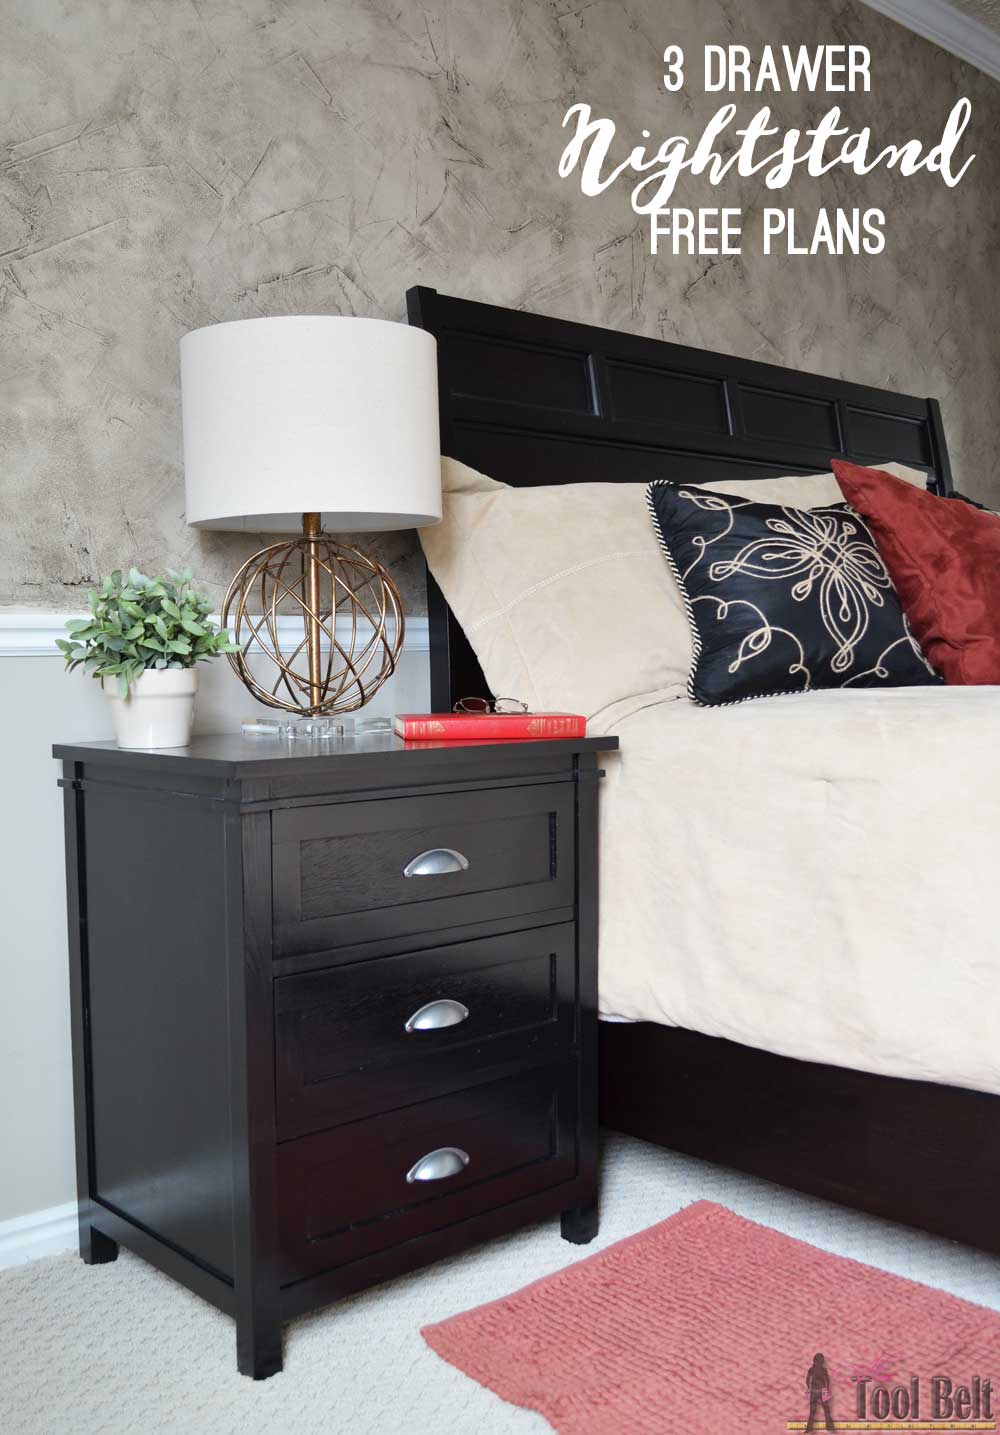 Free Plans For A DIY Craftsman Style 3 Drawer Nightstand Perfect For Any  Bedroom. This